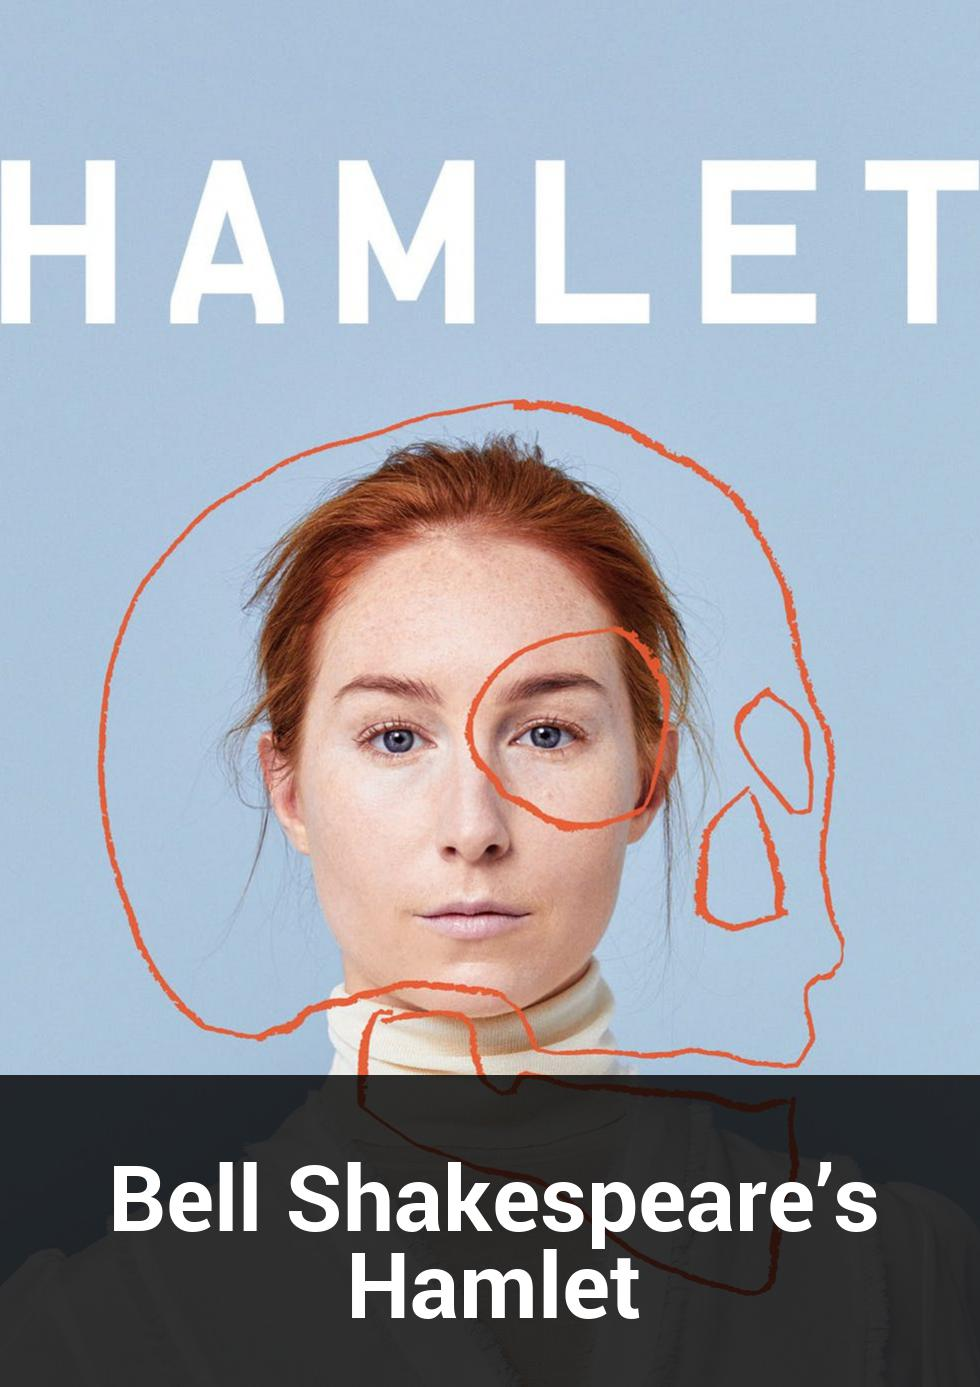 Bell Shakespeare's Hamlet at Canberra Theatre Centre